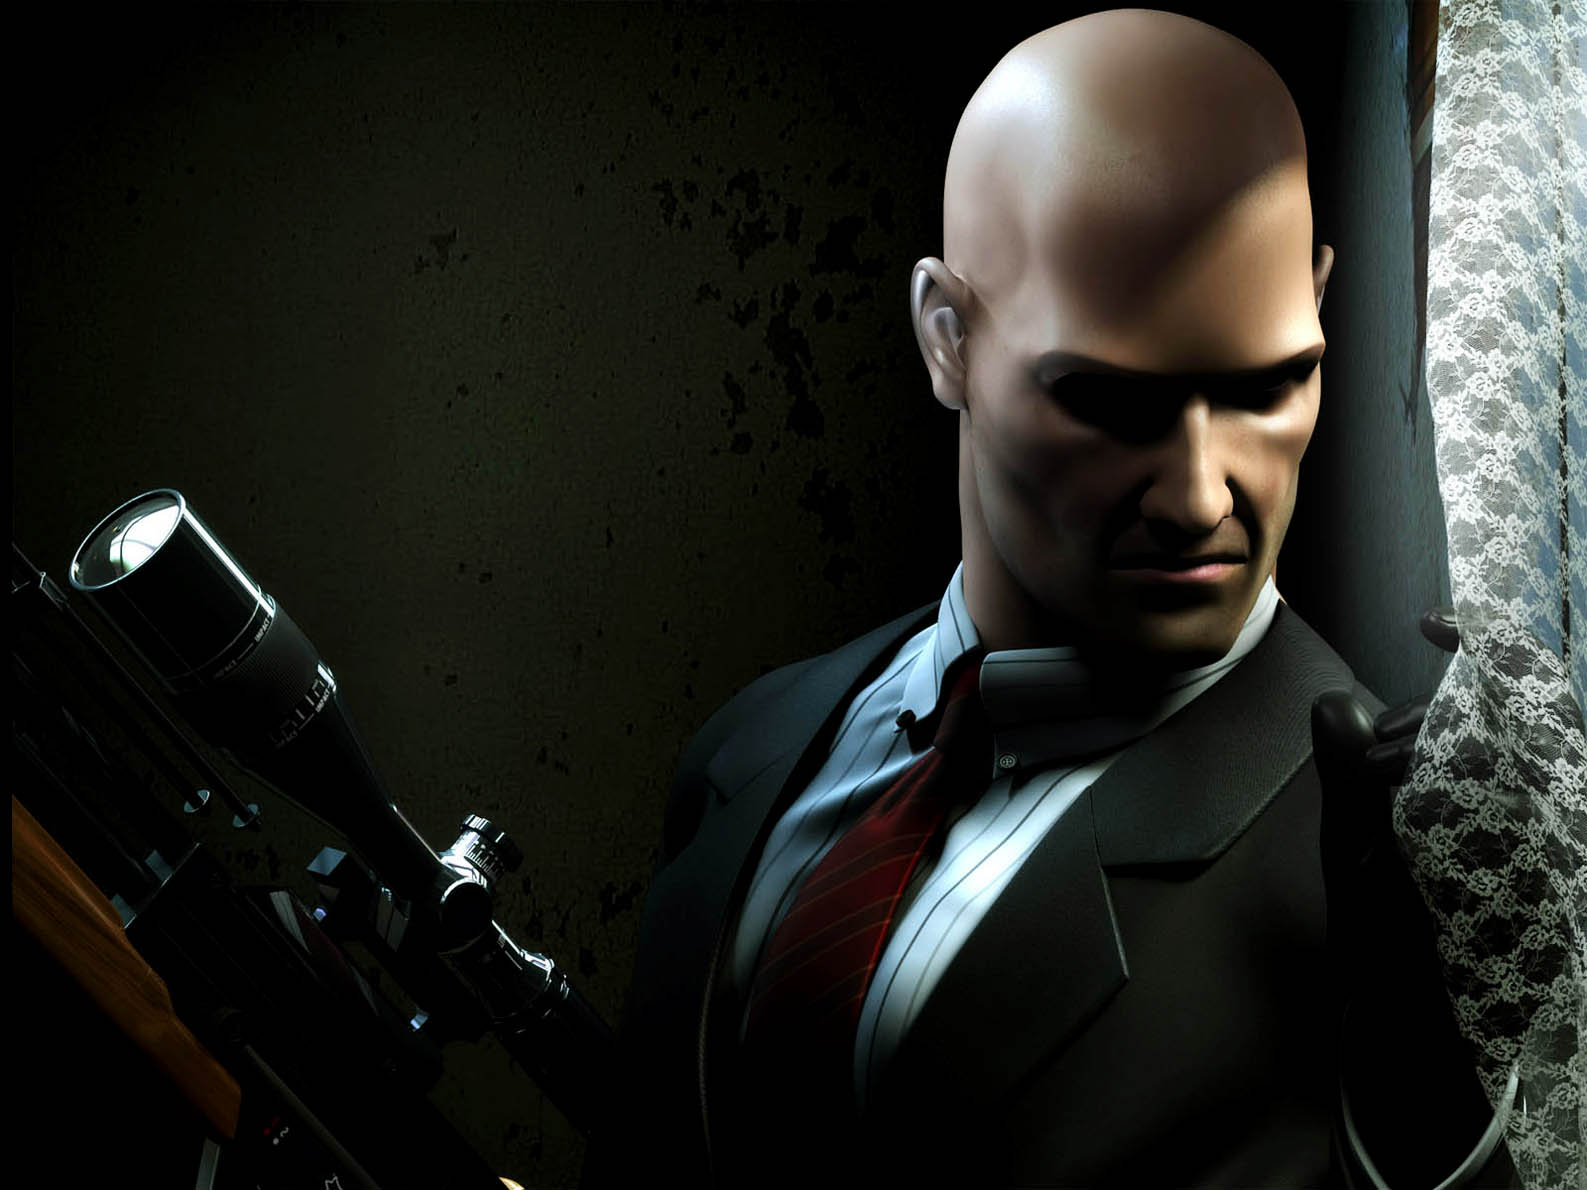 agent 47 hd wallpapers - photo #17